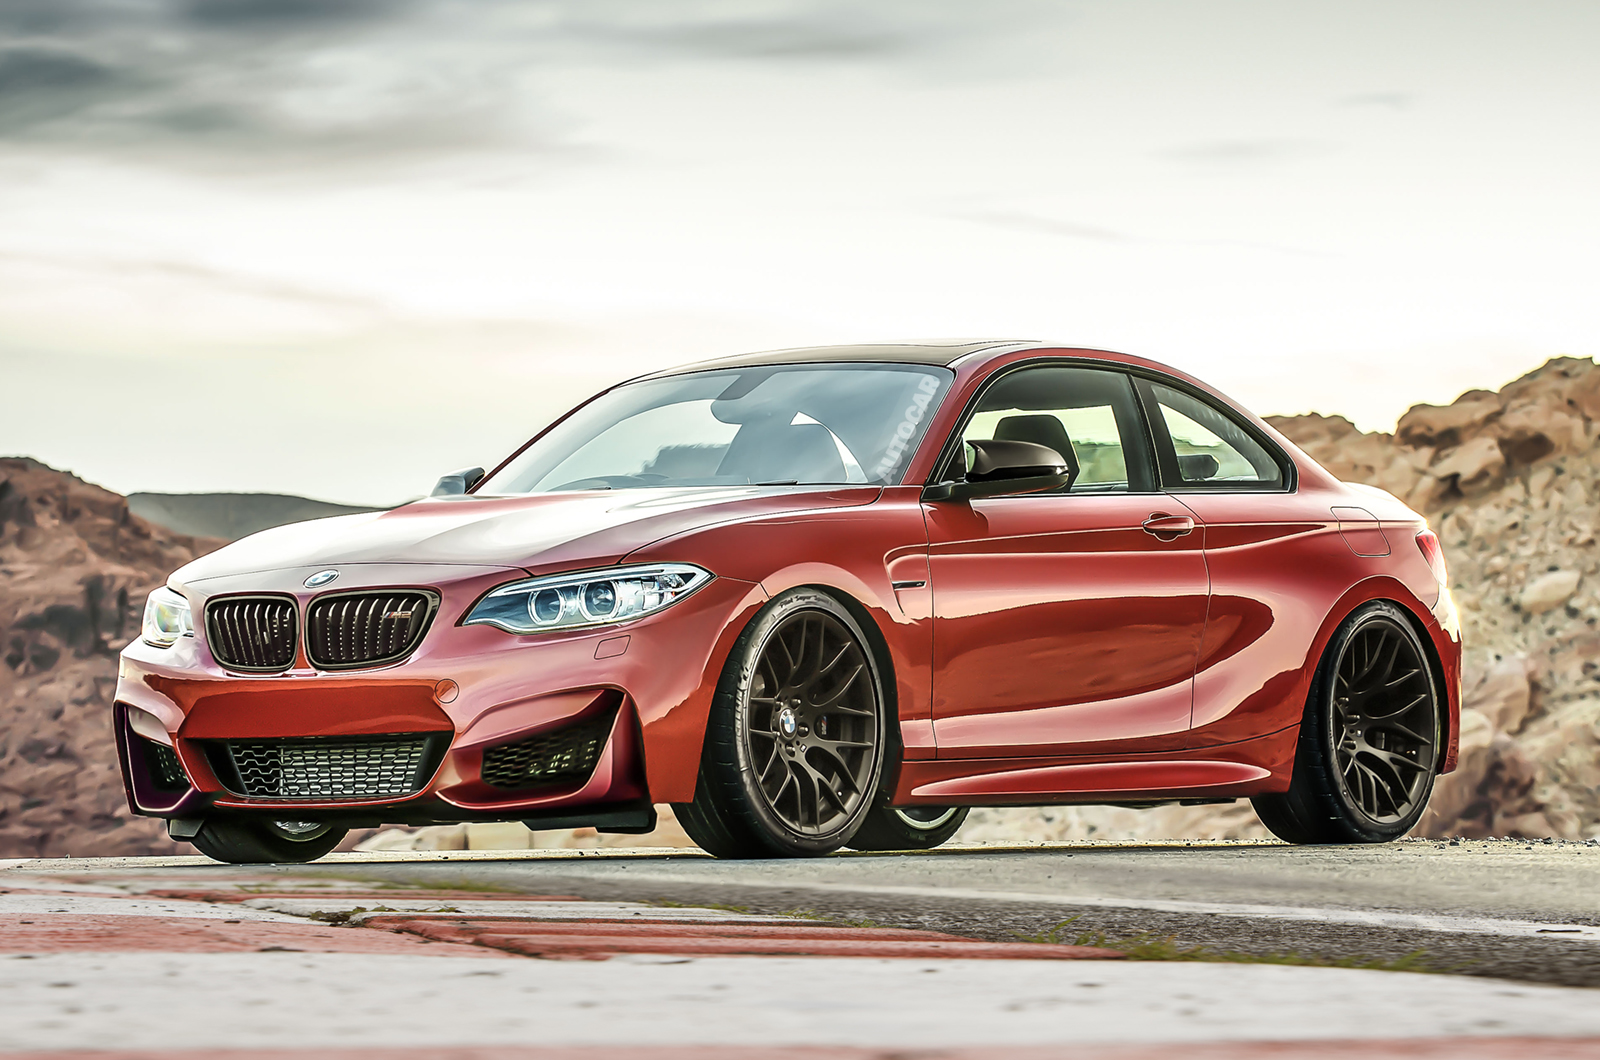 Bmw M Wallpaper Iphone X Red Bmw M2 Wallpaper Full Hd Pictures